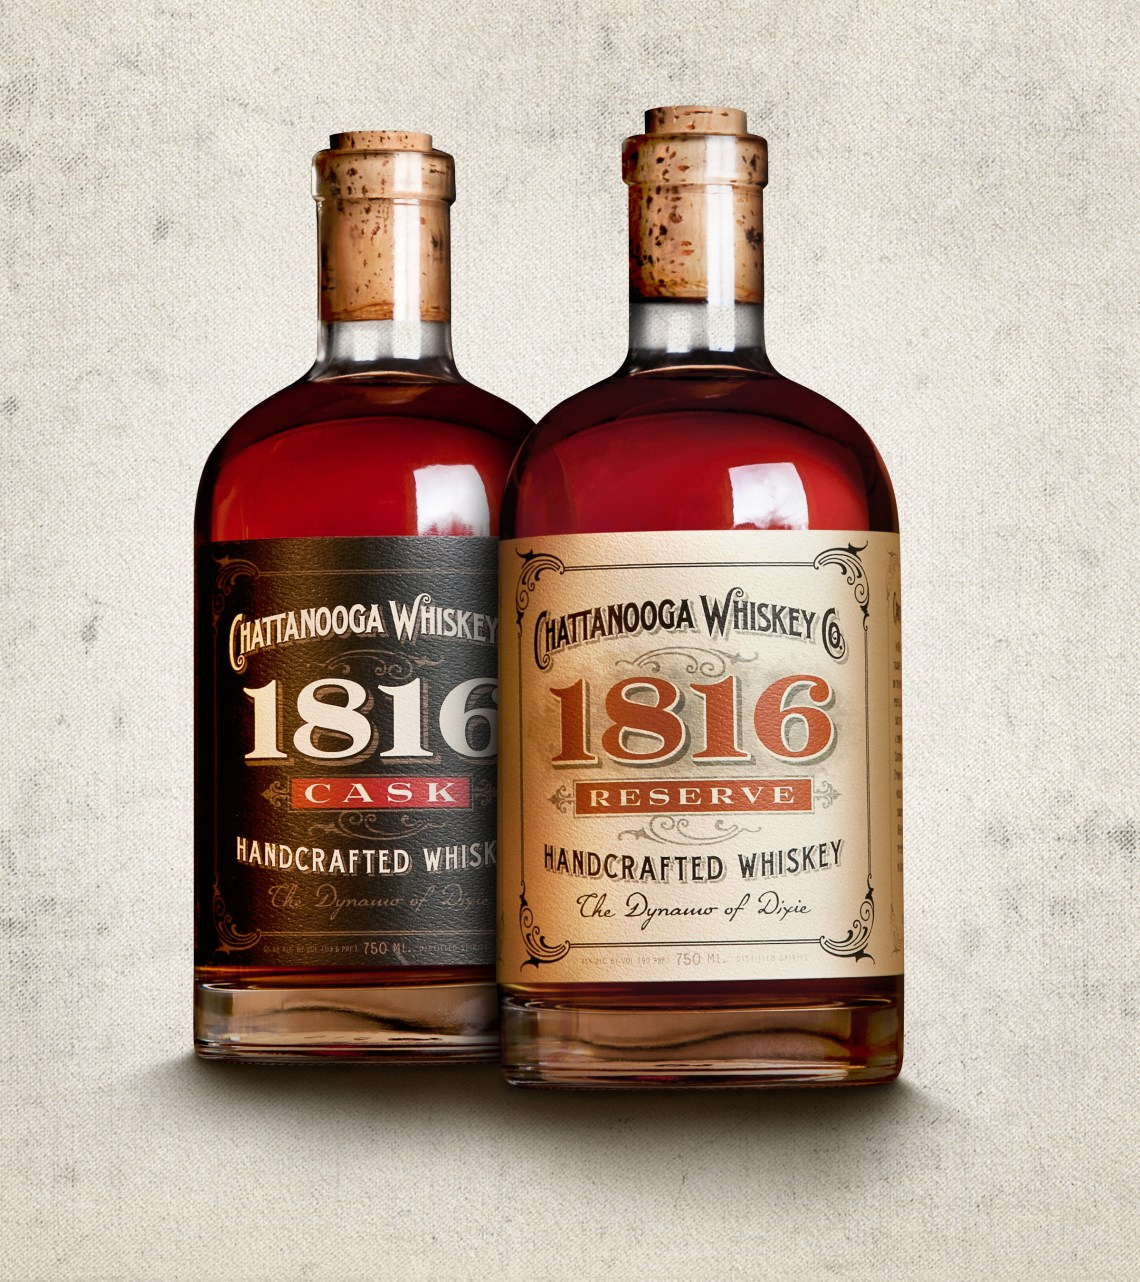 Chattanooga Whiskey Co. 1816 Reserve Handcrafted Whiskey